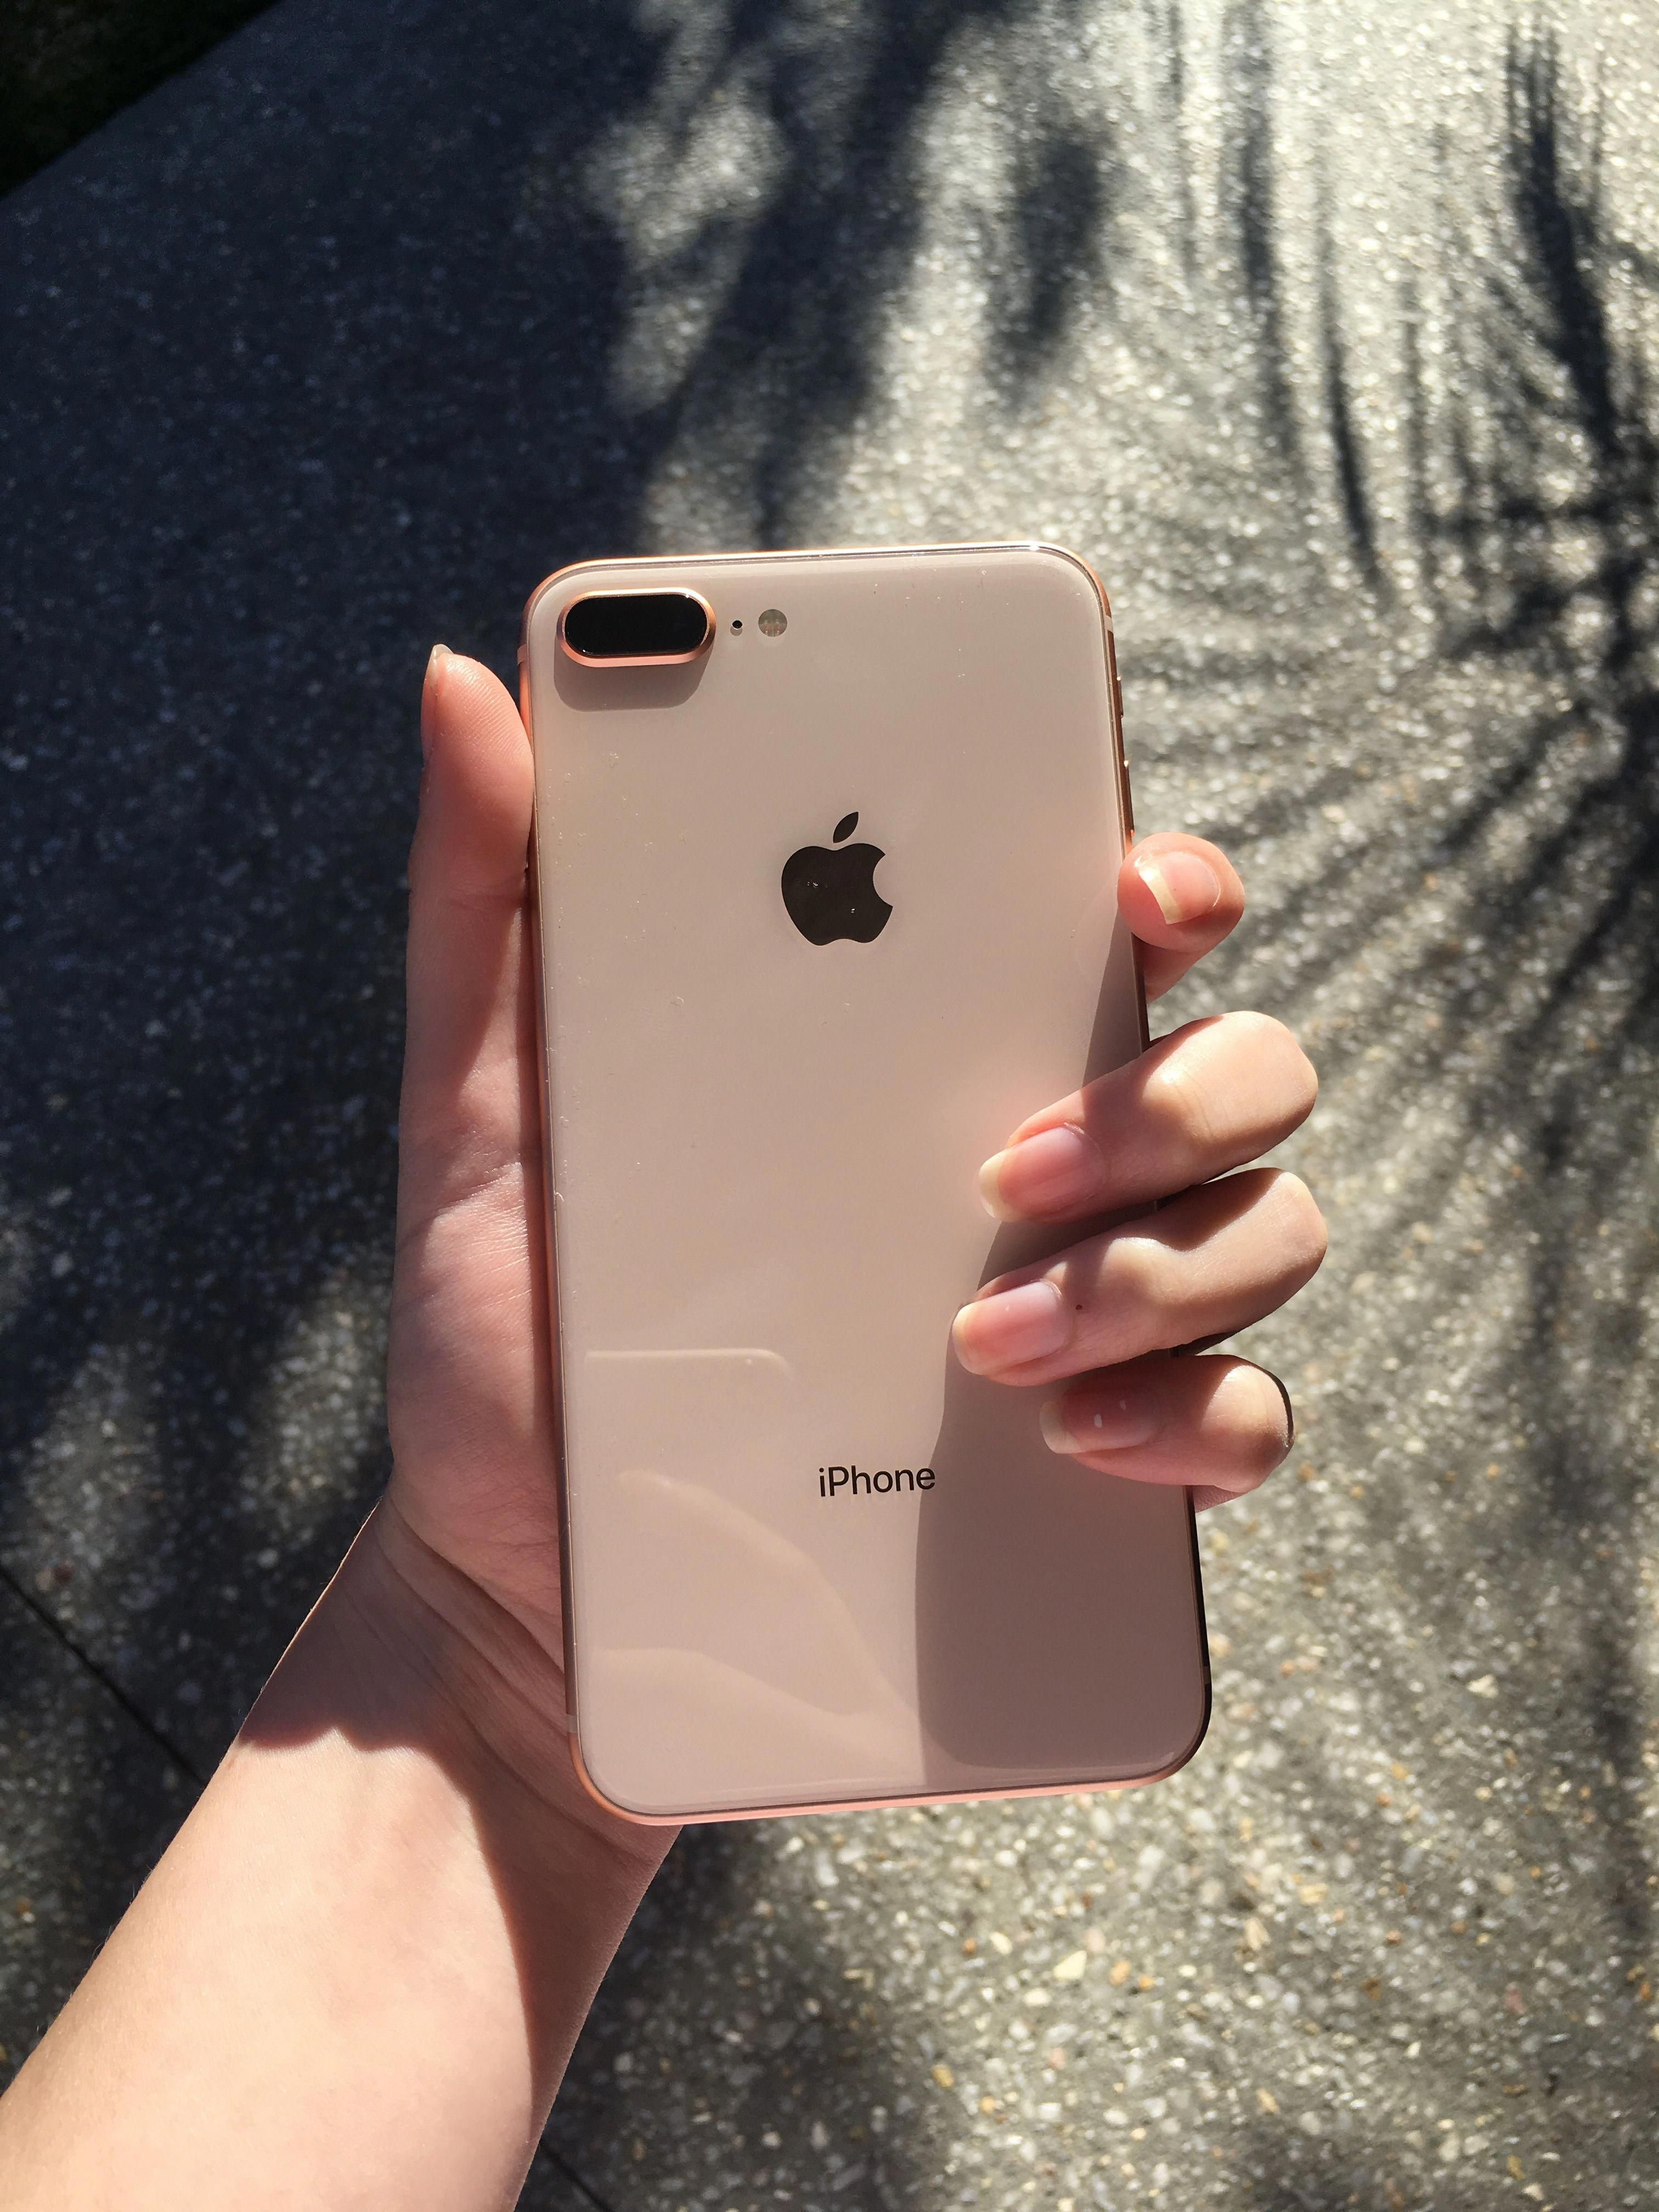 Apple Product Iphone 8 Plus Rosegold Technology Iphone8plus Iphone Iphone Accessories Iphone Phone